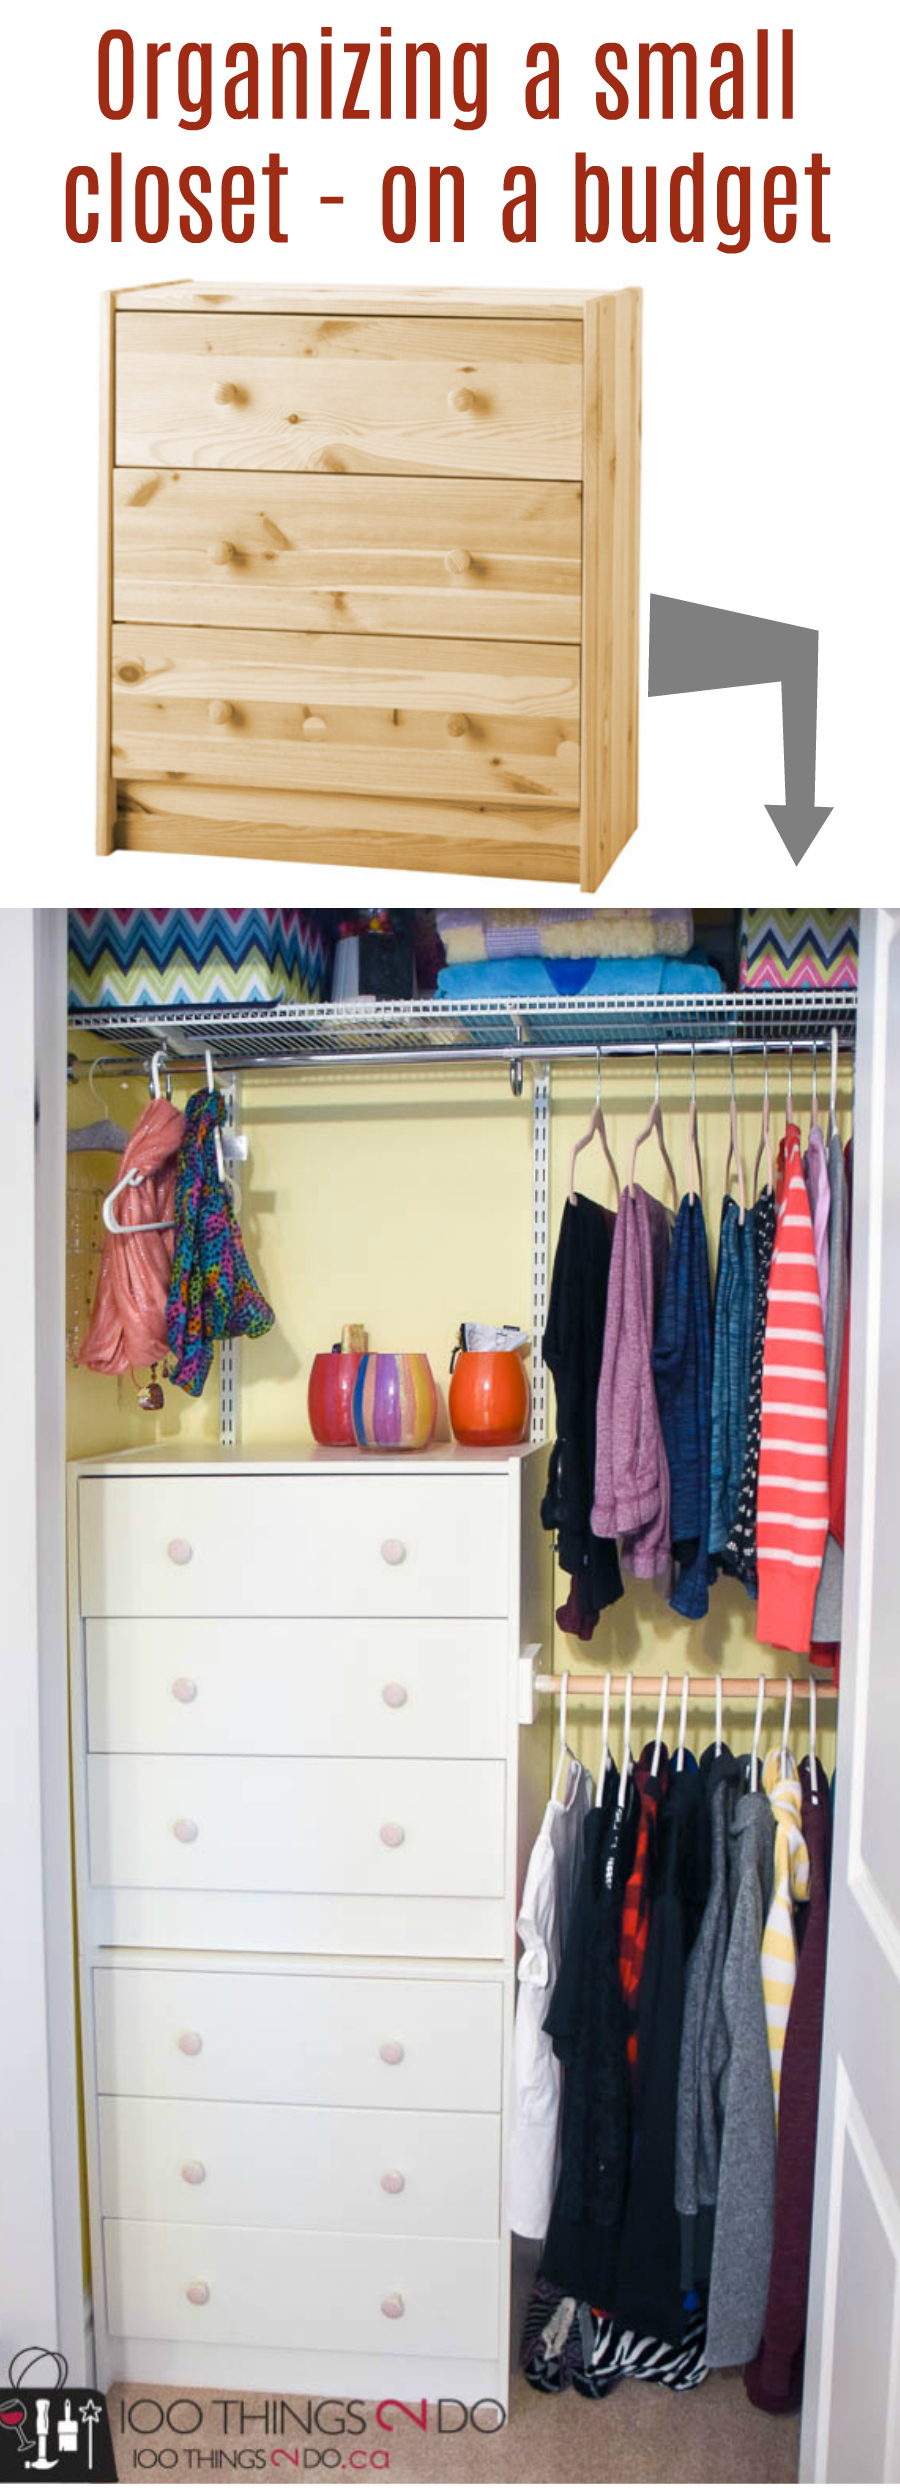 Permalink to Fresh Small Closet organizer Pics